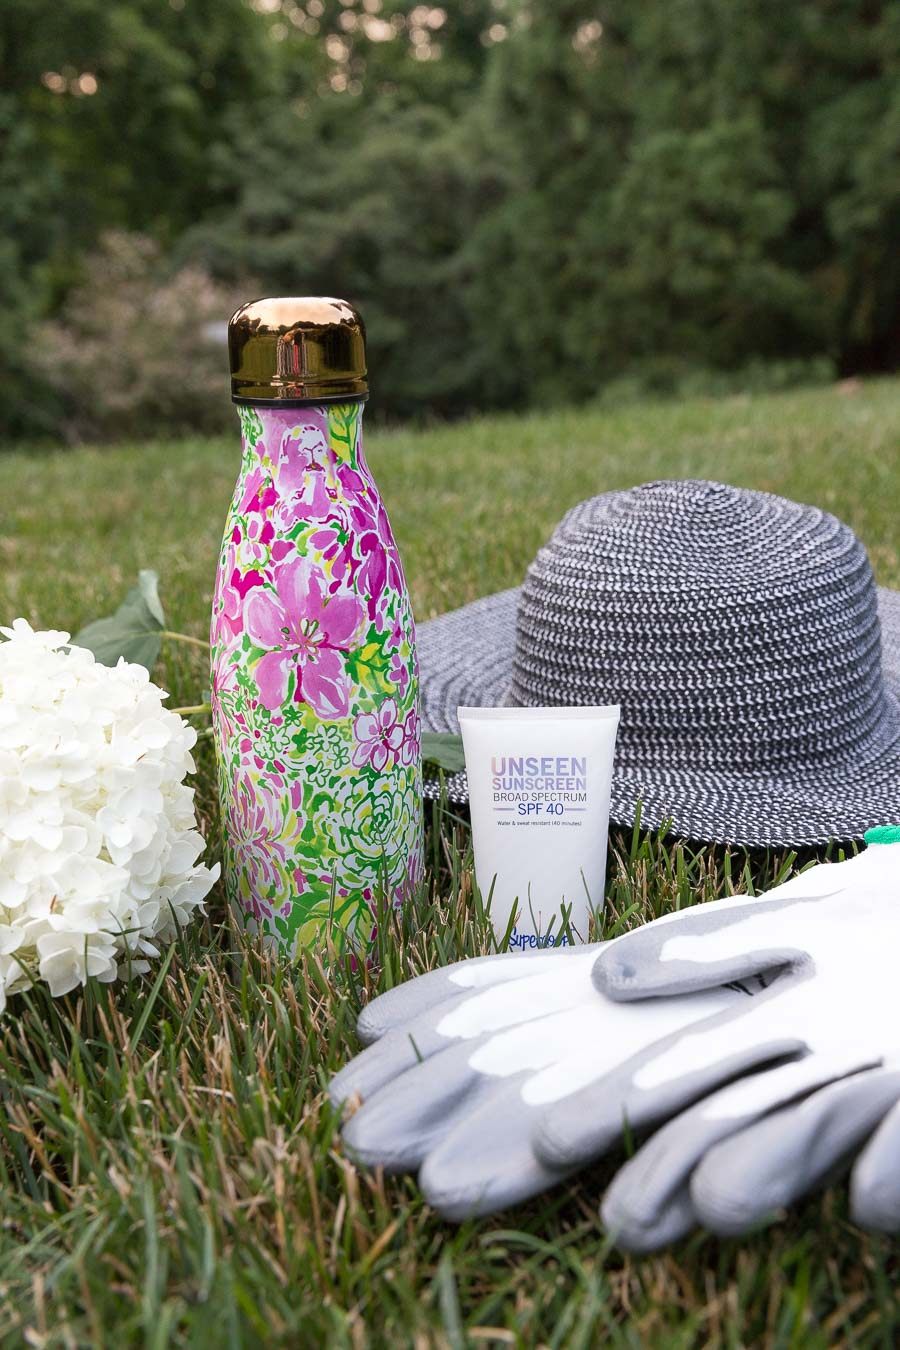 My gardening favorites - invisible sunscreen, floppy hat, gloves, and water bottle - I've linked the exact items in my post!